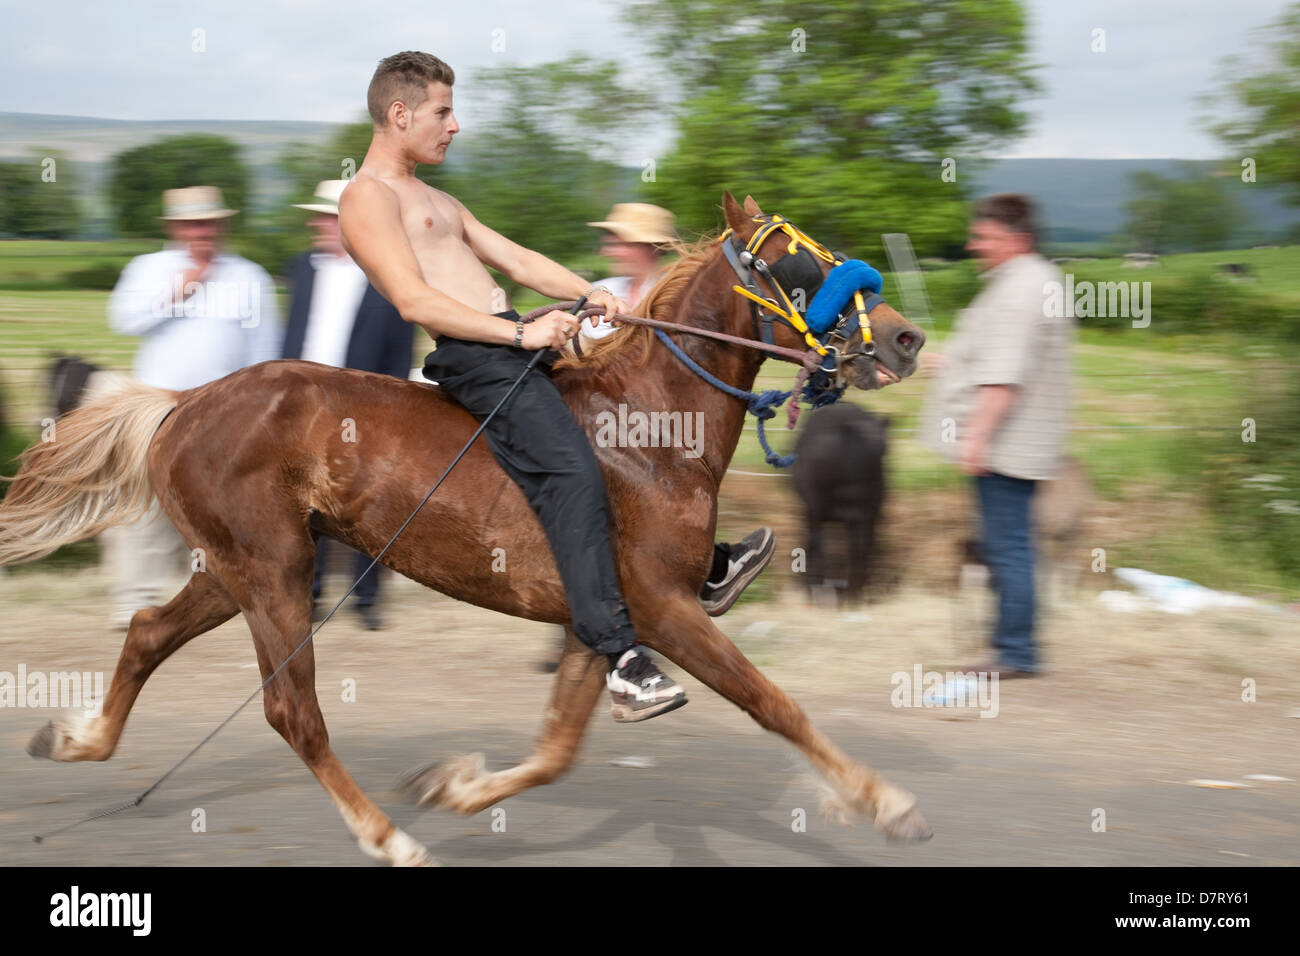 A speeding horse and rider at the Appleby Fair, an annual gathering of Gypsy and Traveller communities in Cumbria. Stock Photo